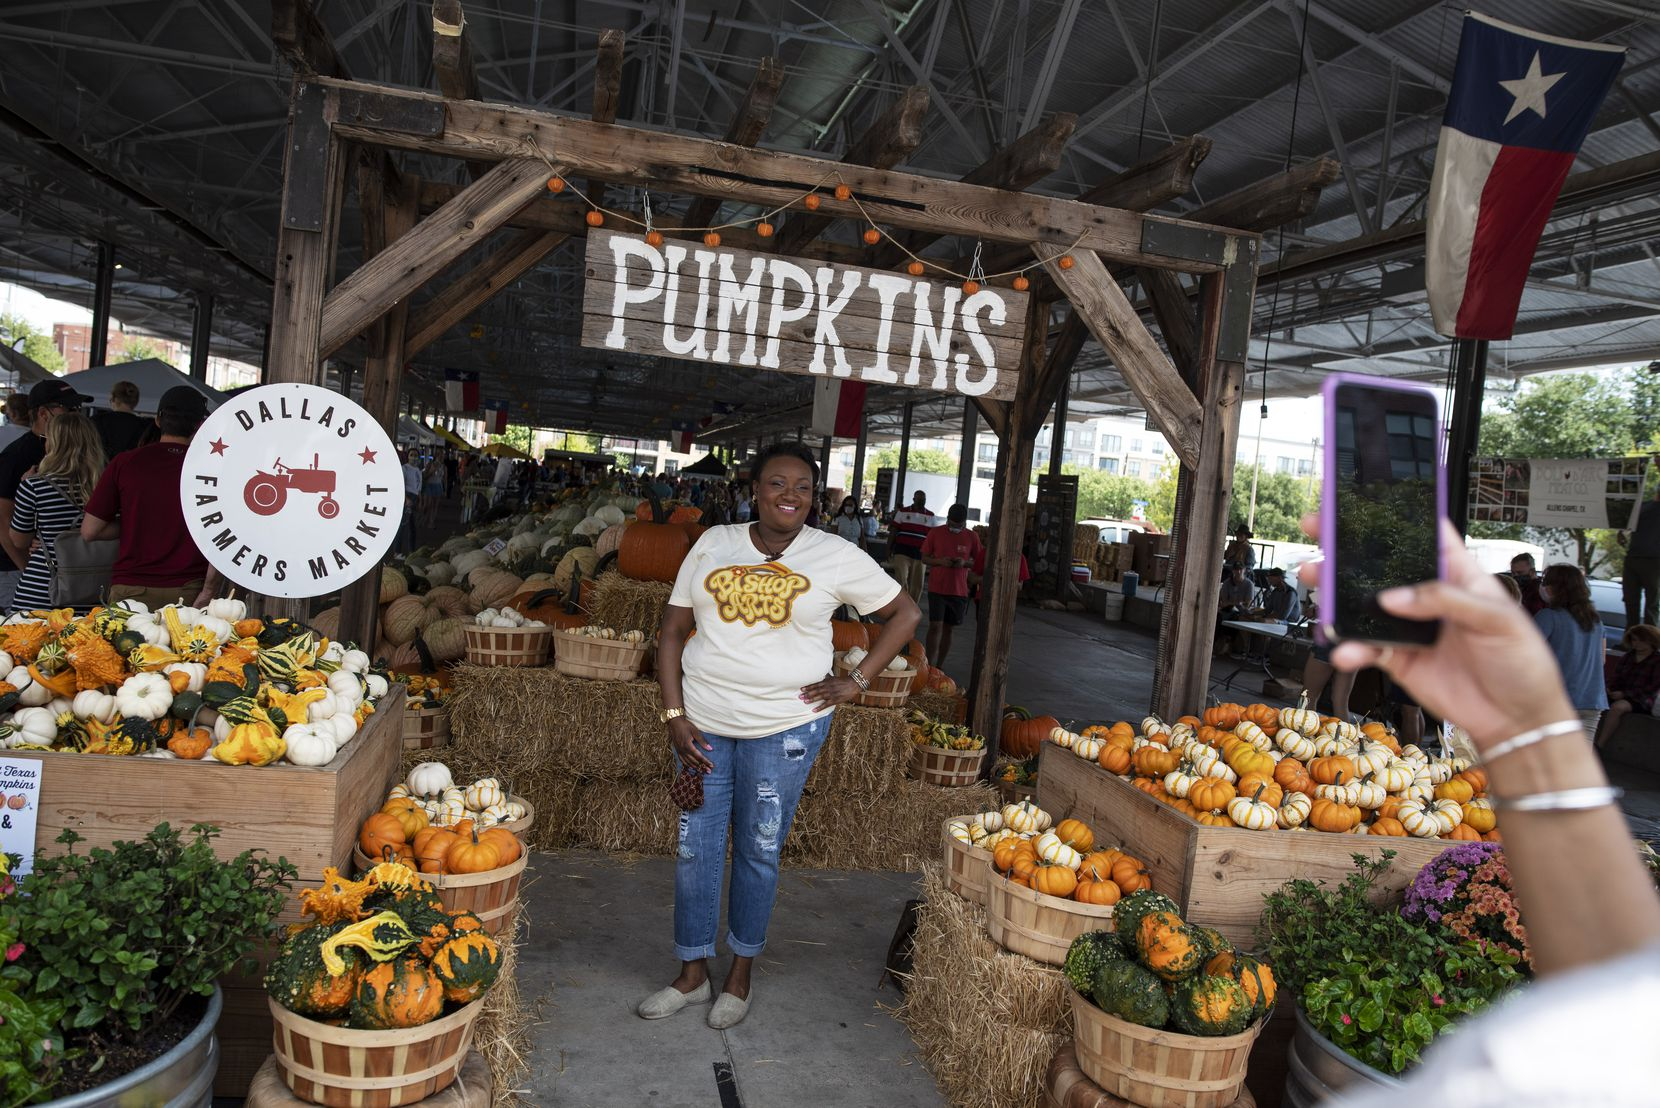 Monique Brumsey poses for a photo with pumpkins at the Dallas Pumpkin Patch during the Dallas Farmers Market in downtown, Saturday, Sept. 12, 2020. The popular pumpkin patch hosts over 25 pumpkin varieties. Ben Torres/Special Contributor